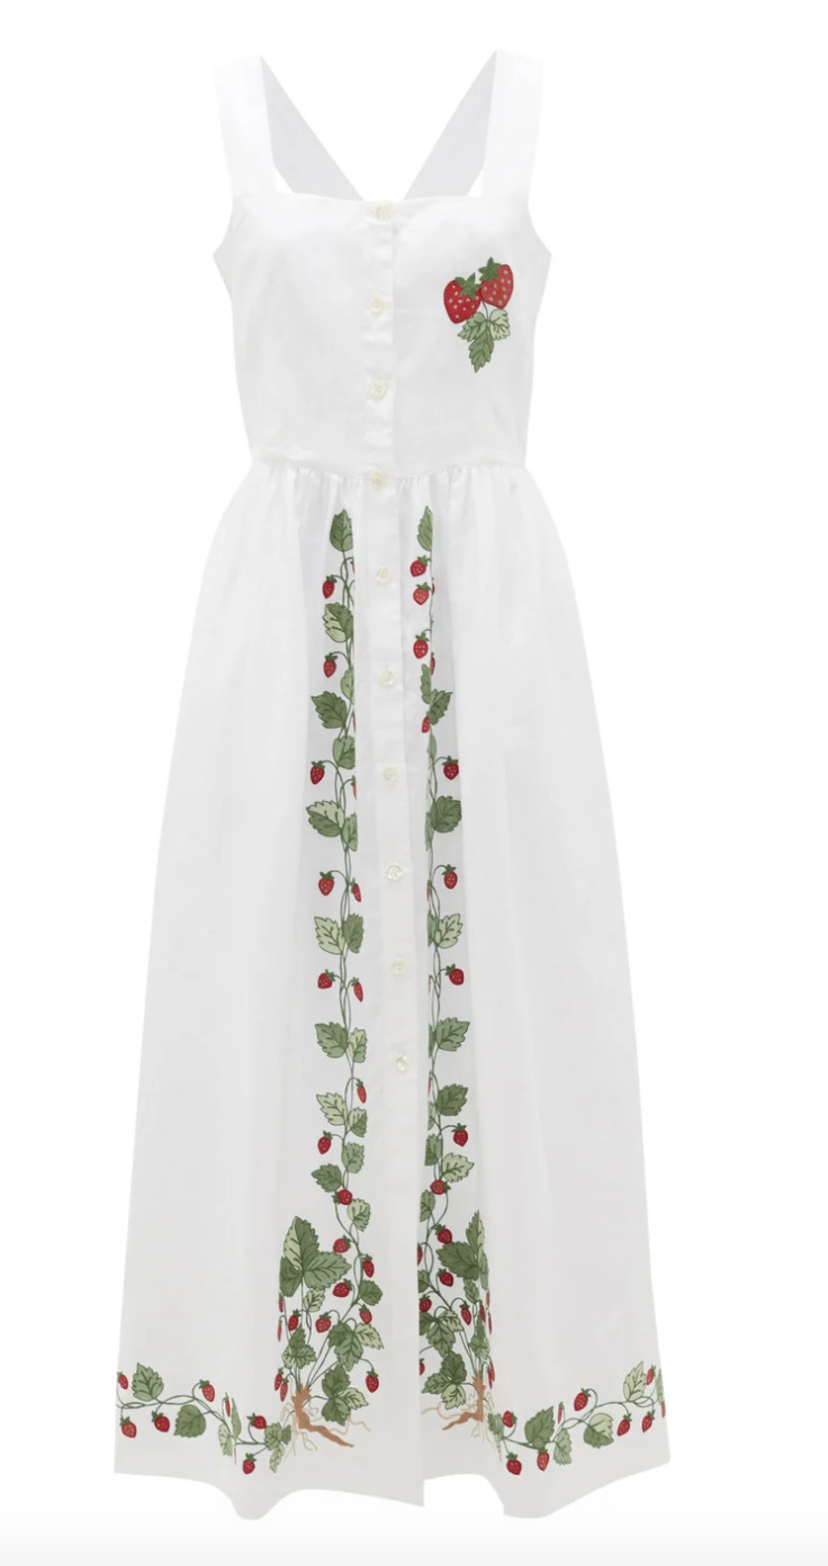 Loretta Caponi Strawberry Vine Dress Dresses